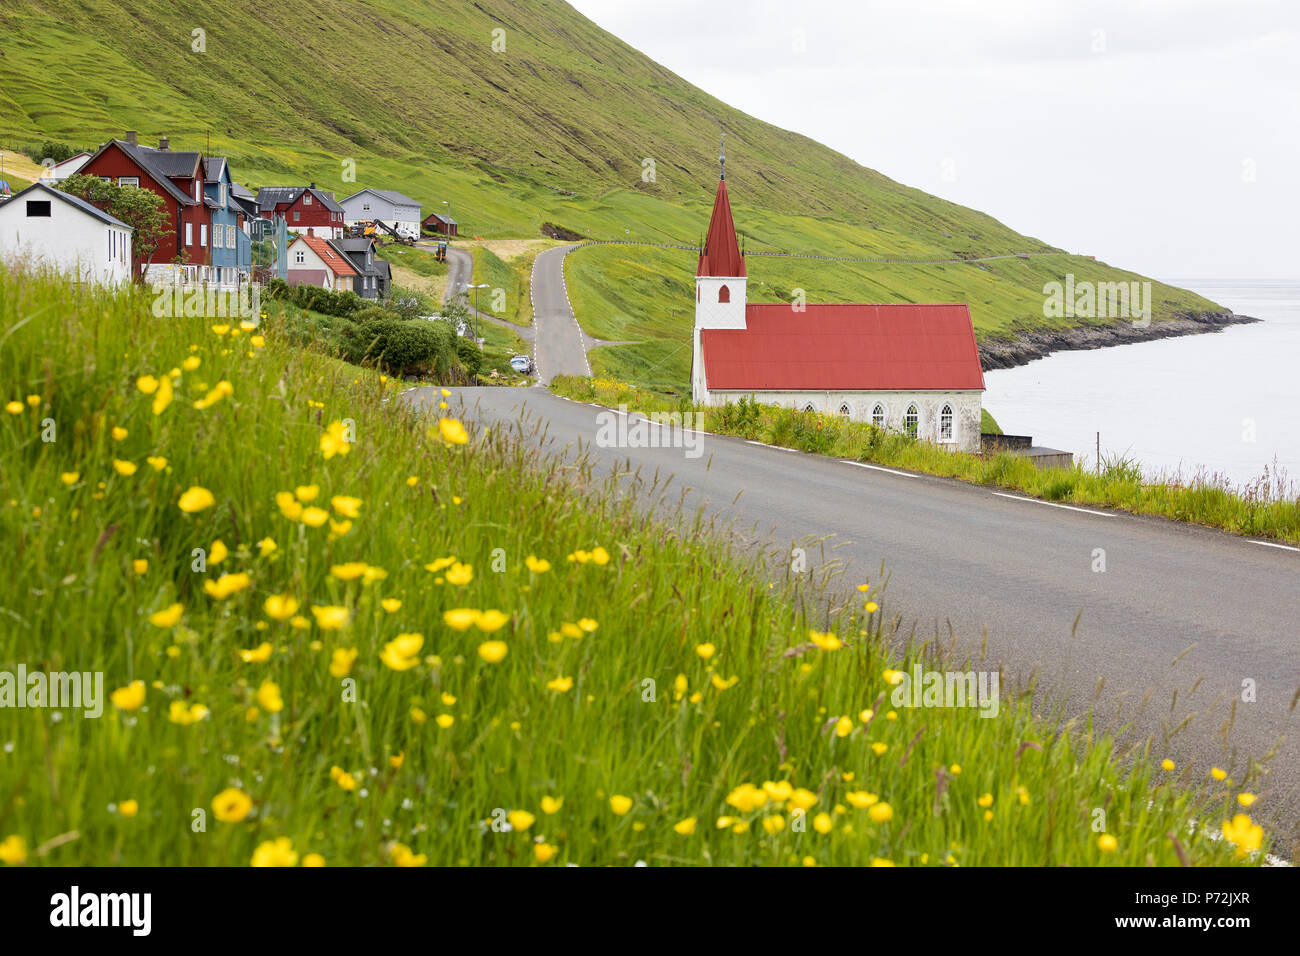 Traditional village of Husar, Kalsoy Island, Faroe Islands, Denmark, Europe - Stock Image